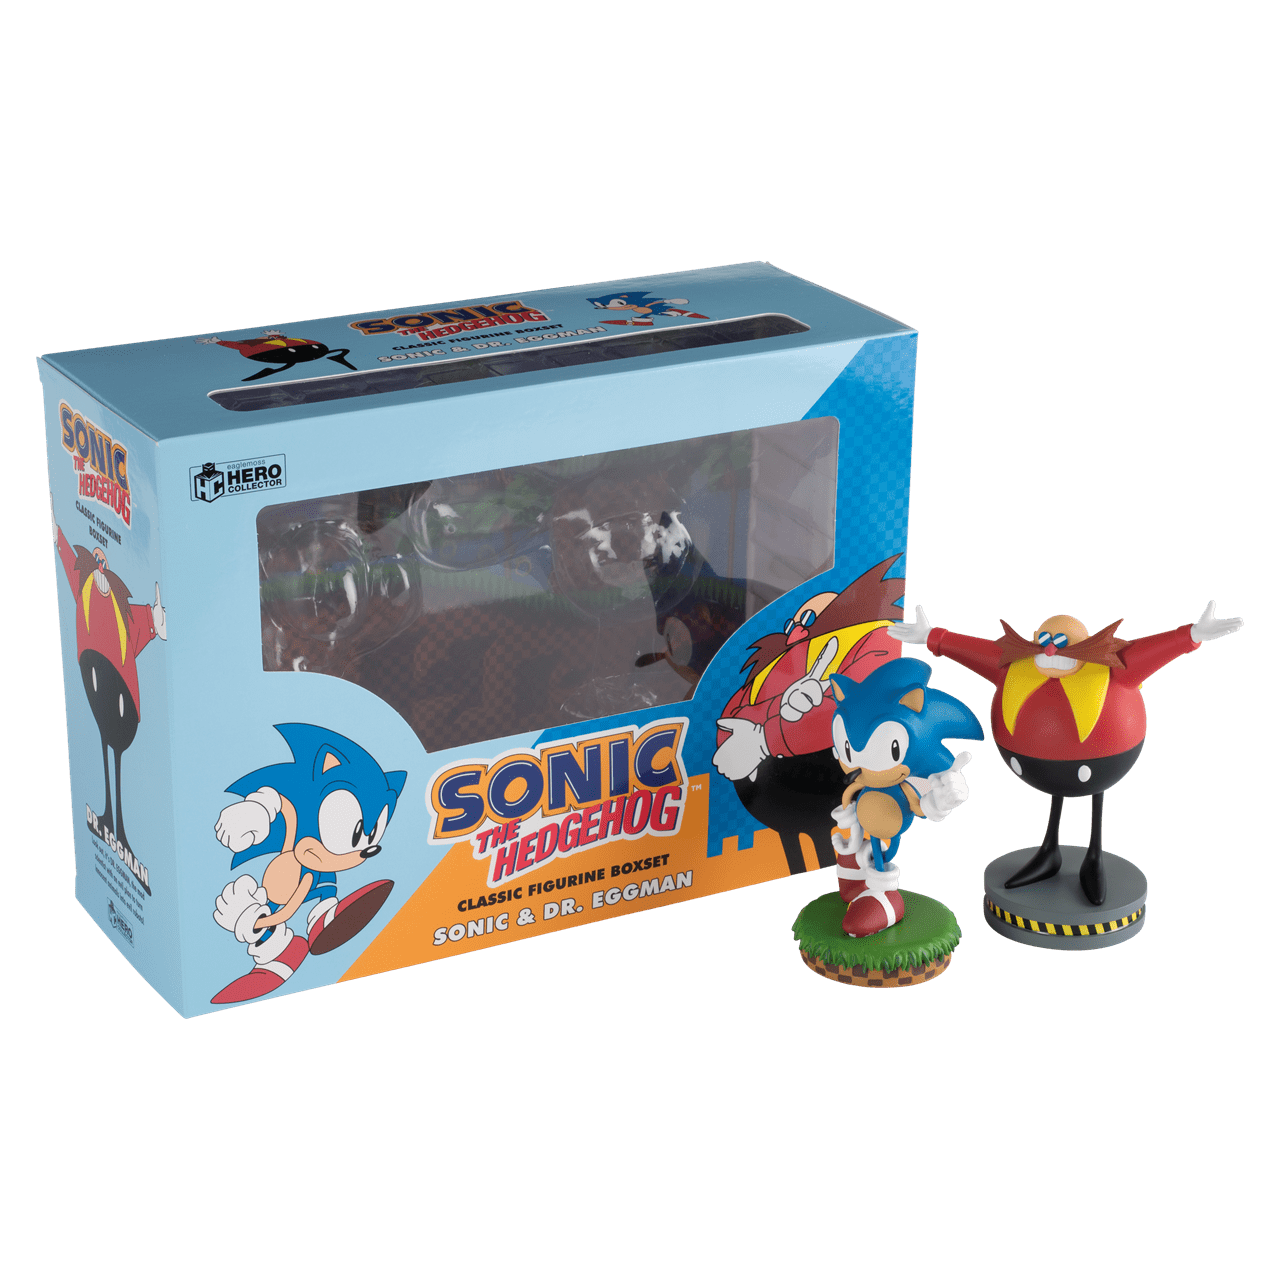 Sonic And Dr Eggman Figurine Set Hero Collector Figurine Free Shipping Over 20 Hmv Store